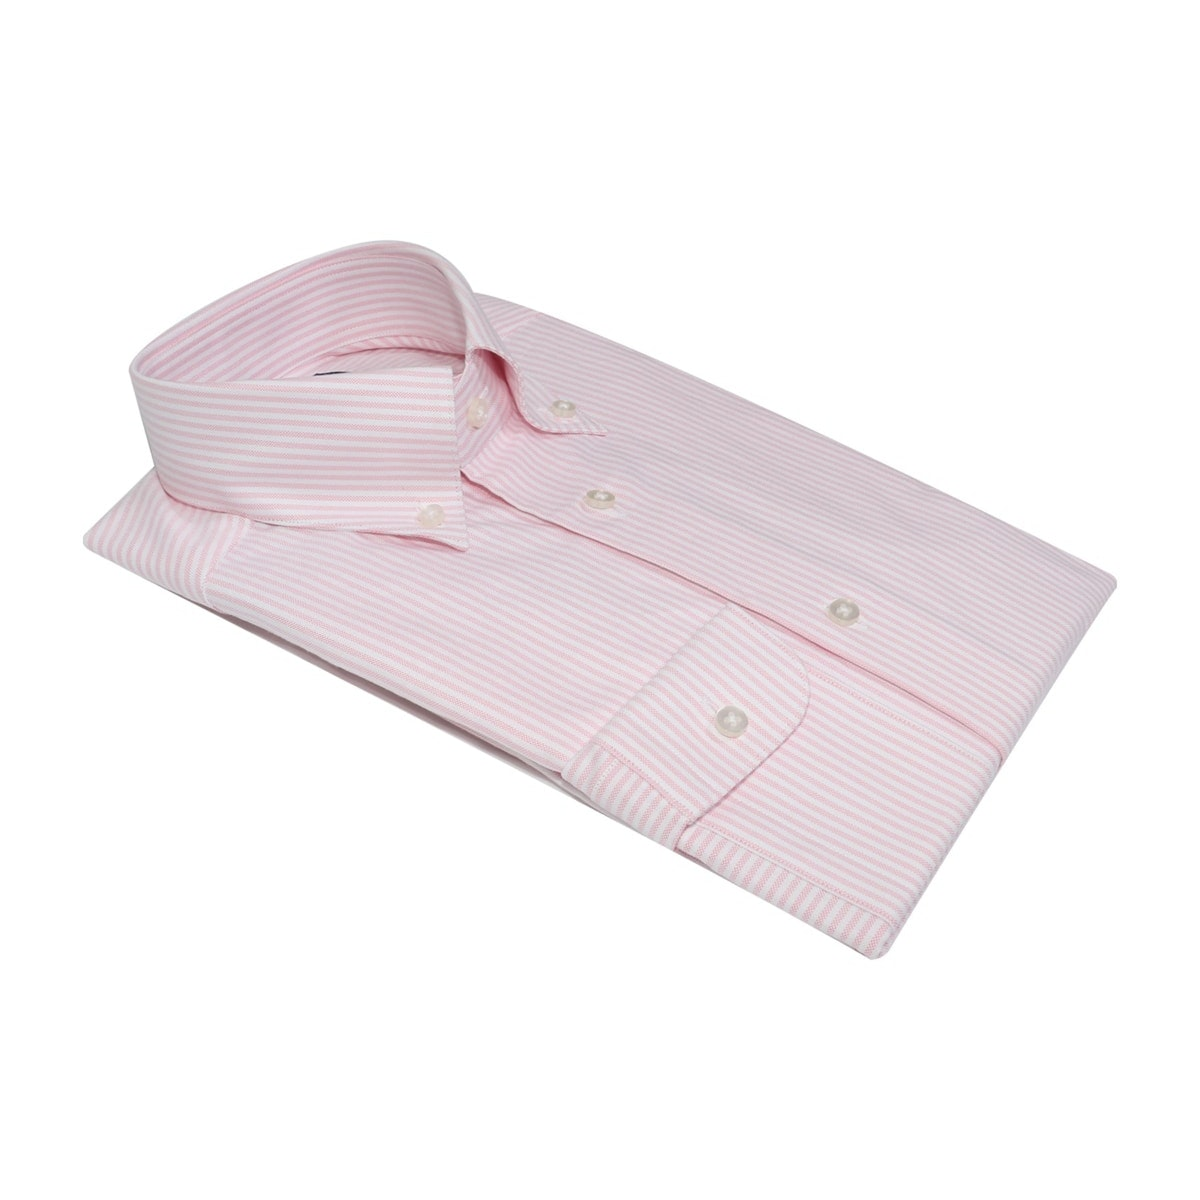 InStitchu Collection The Nanarup Pink Striped Shirt